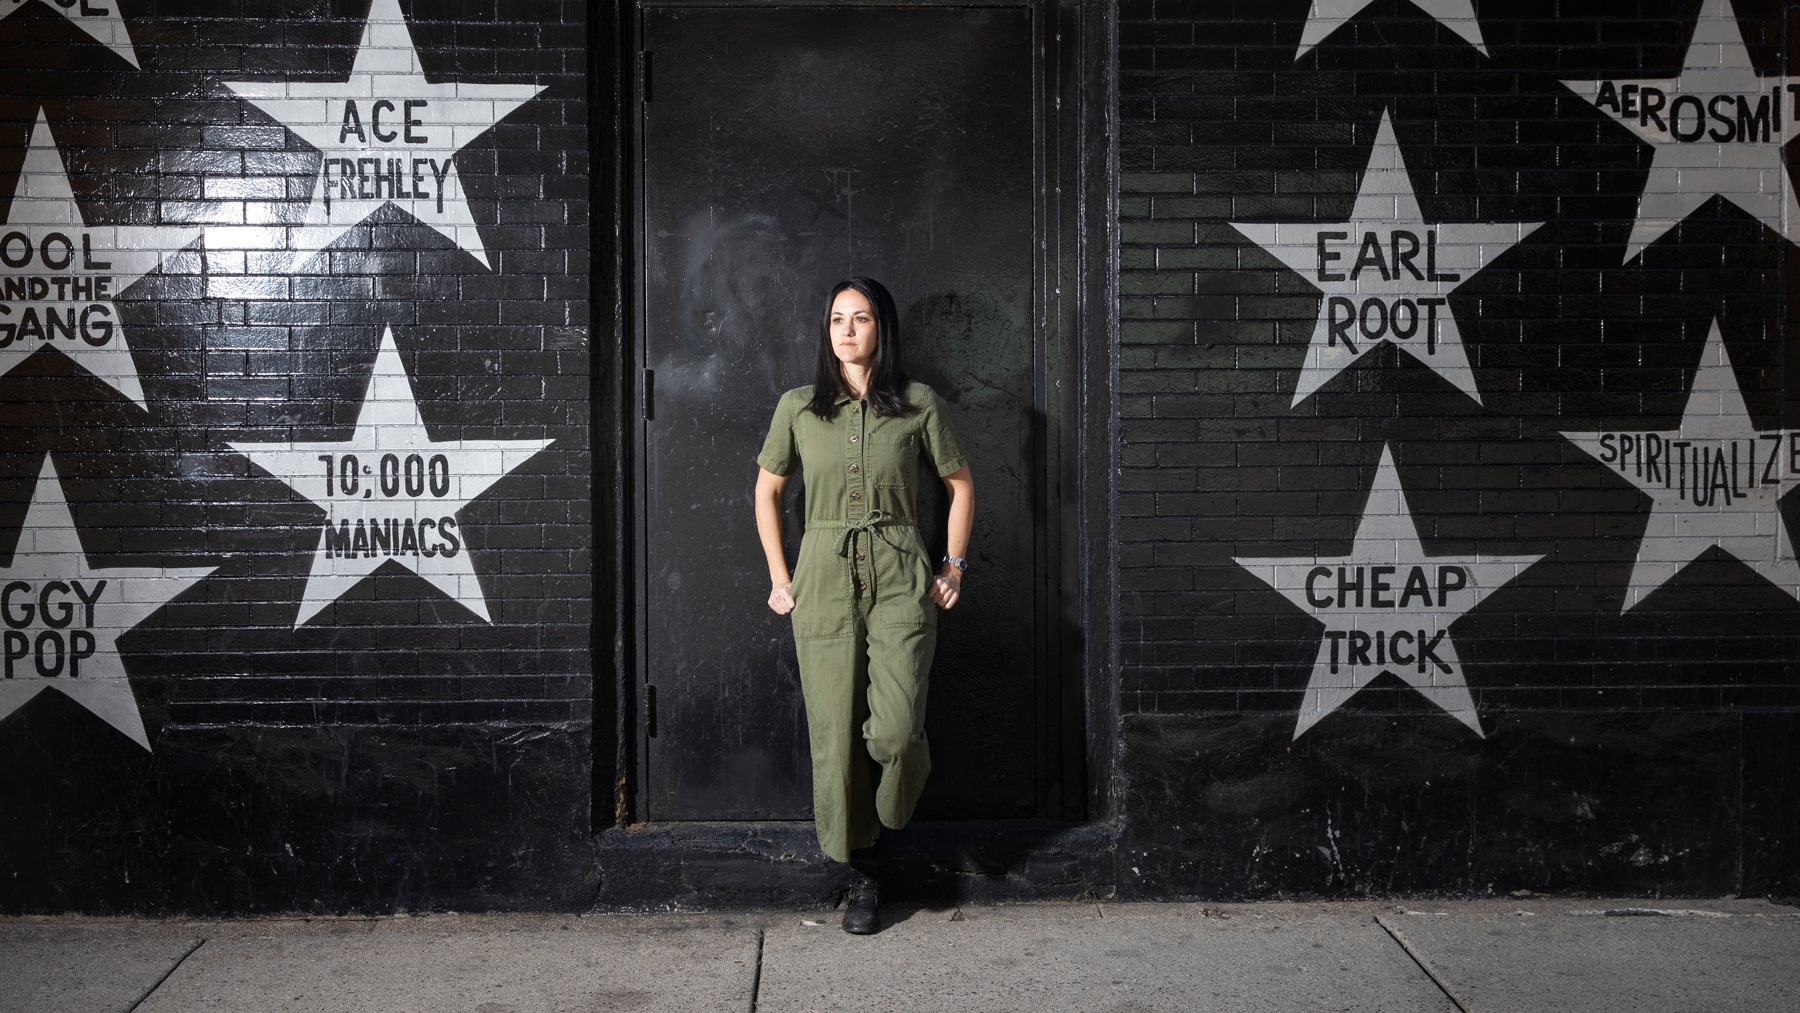 30245386A (05/03/20) - CUL - A portrait of Dayna Frank, president and CEO of First Avenue, in front of the famed music venue in Minneapolis, Minn., on Sunday, May 3, 2020. (Jenn Ackerman for The New York Times) @ackermangruber